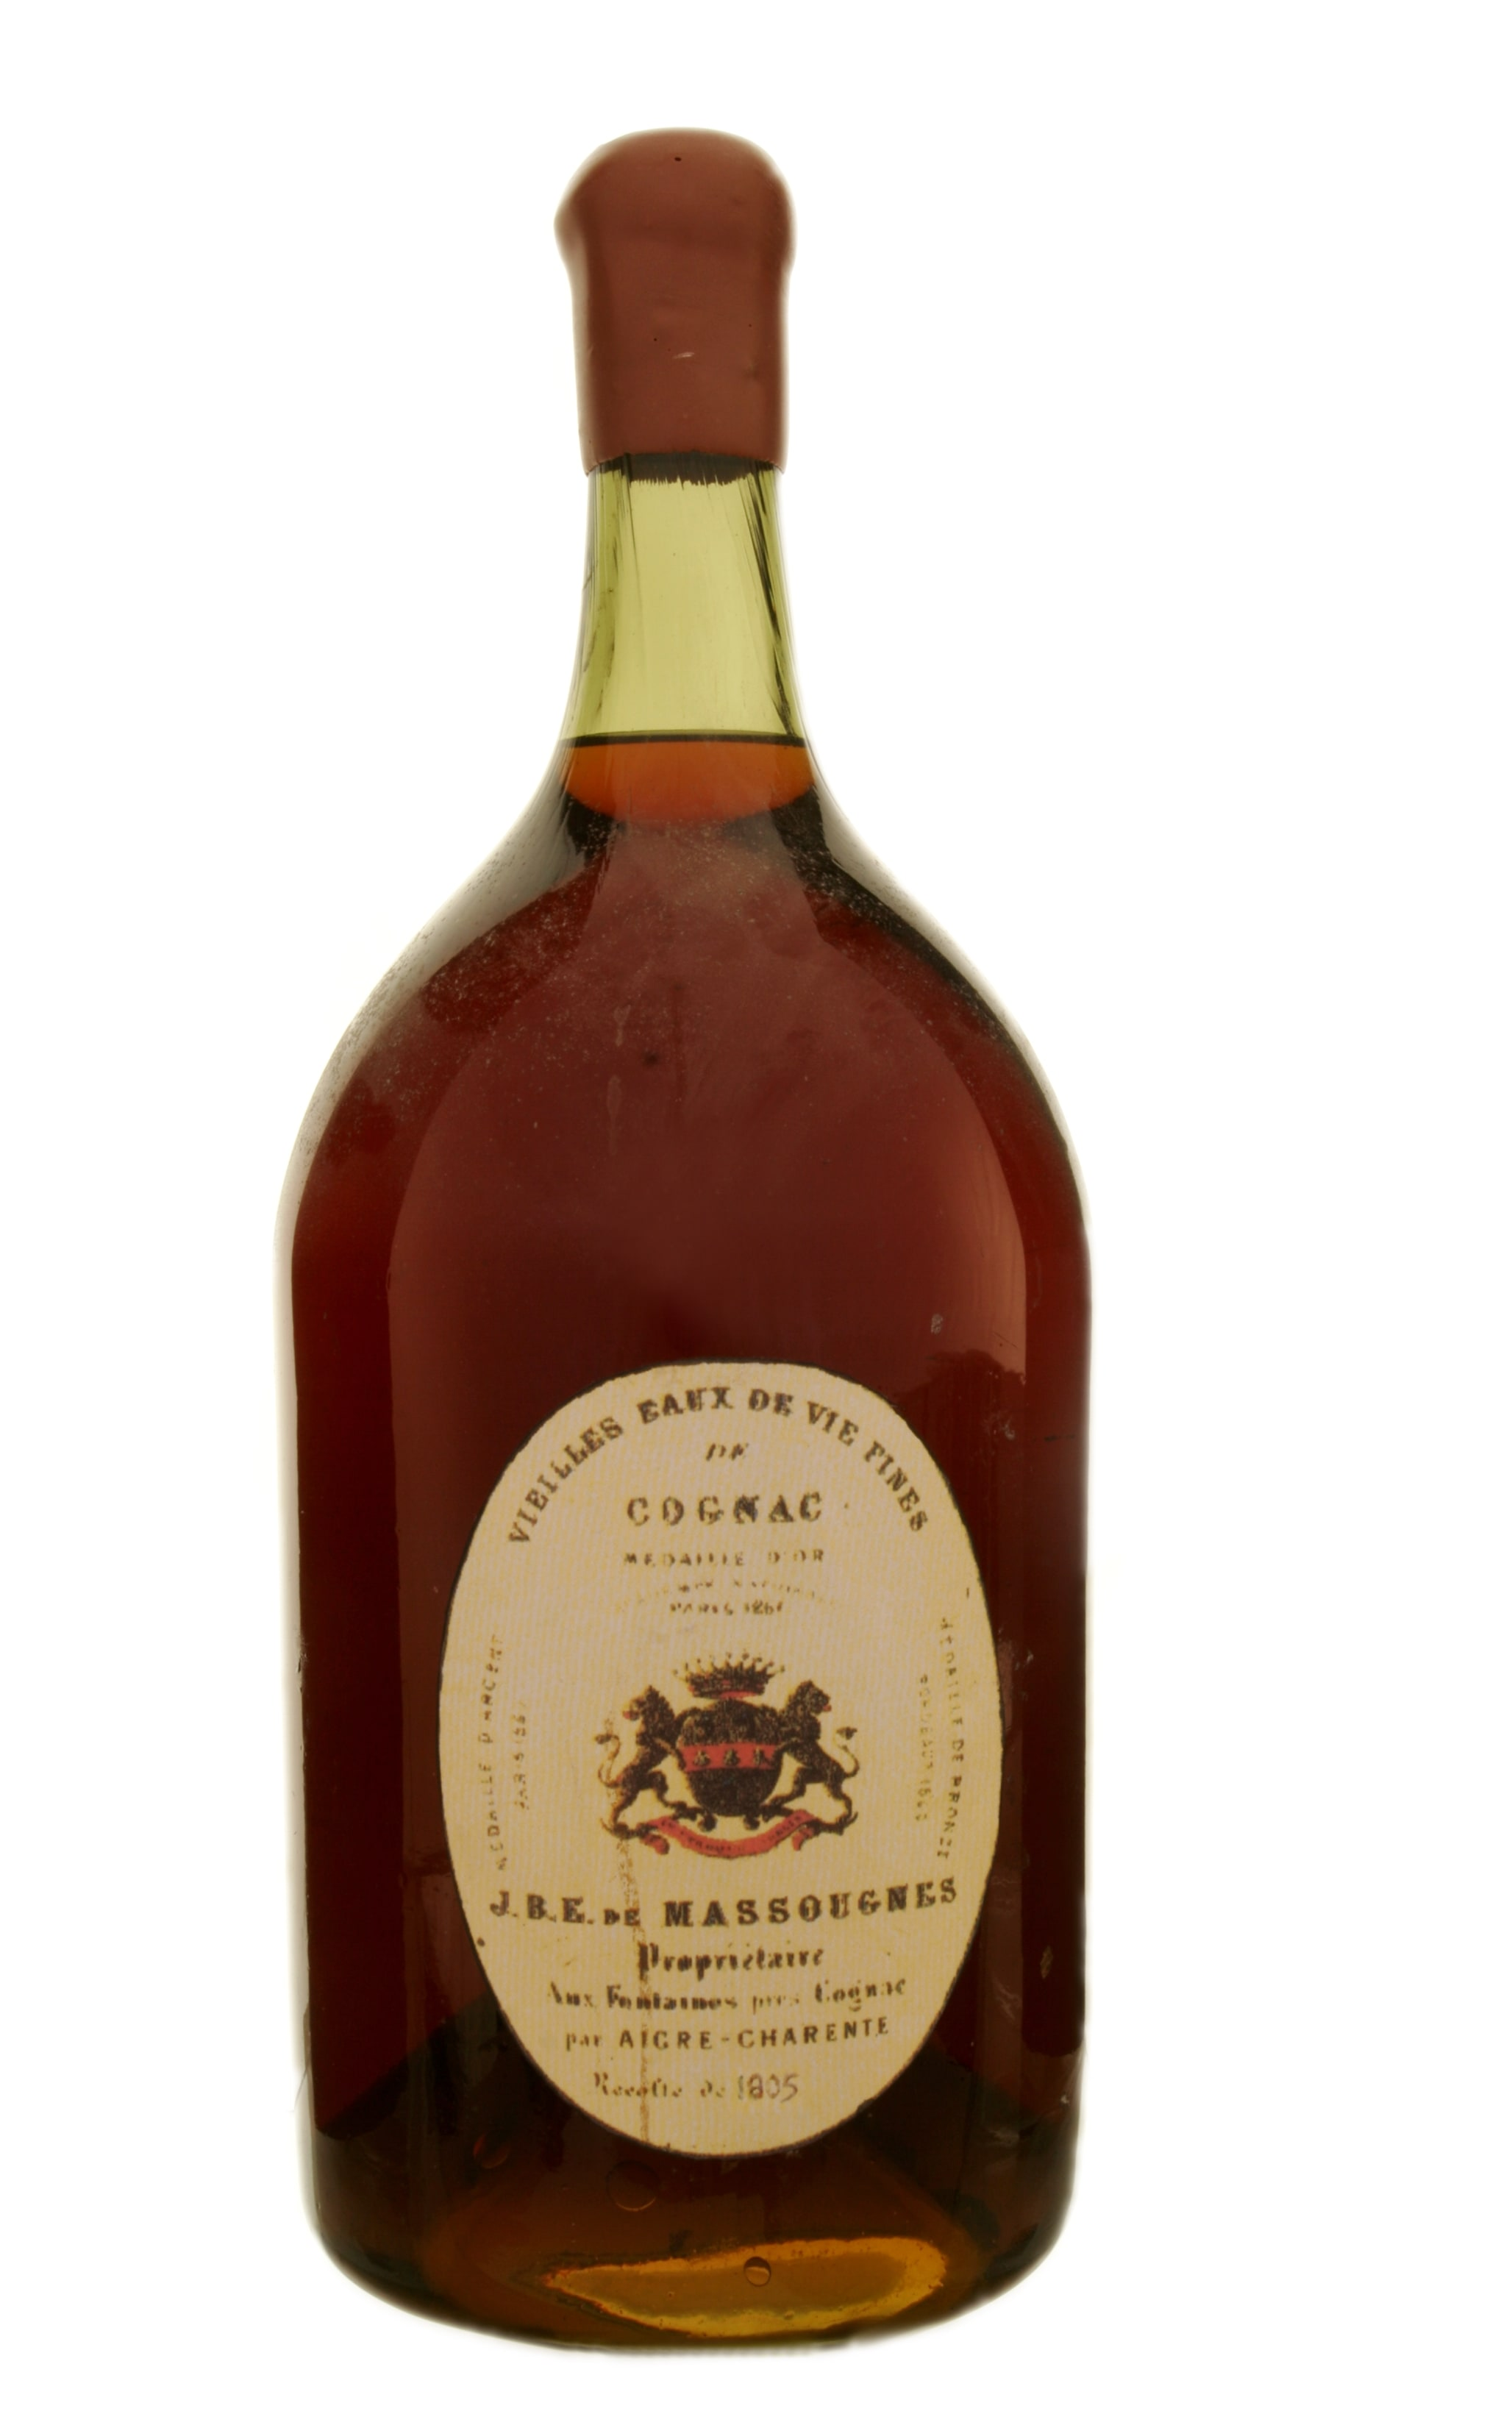 One of the rarest and highest single value Cognac sales in history!